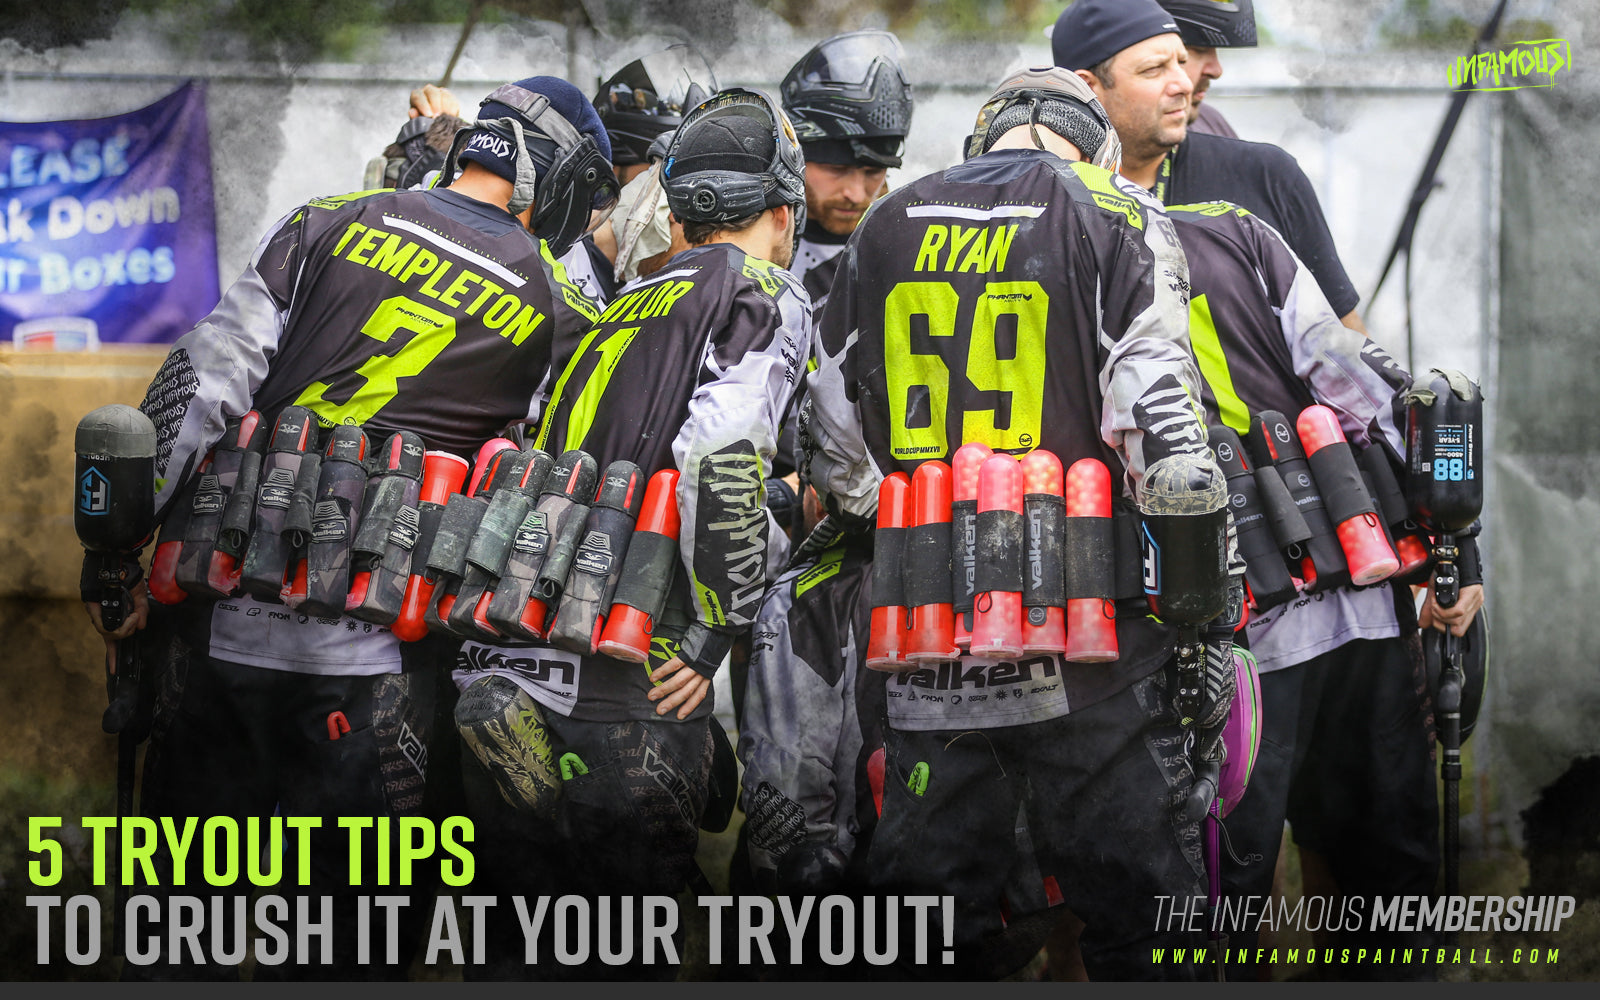 5 Tryout Tips